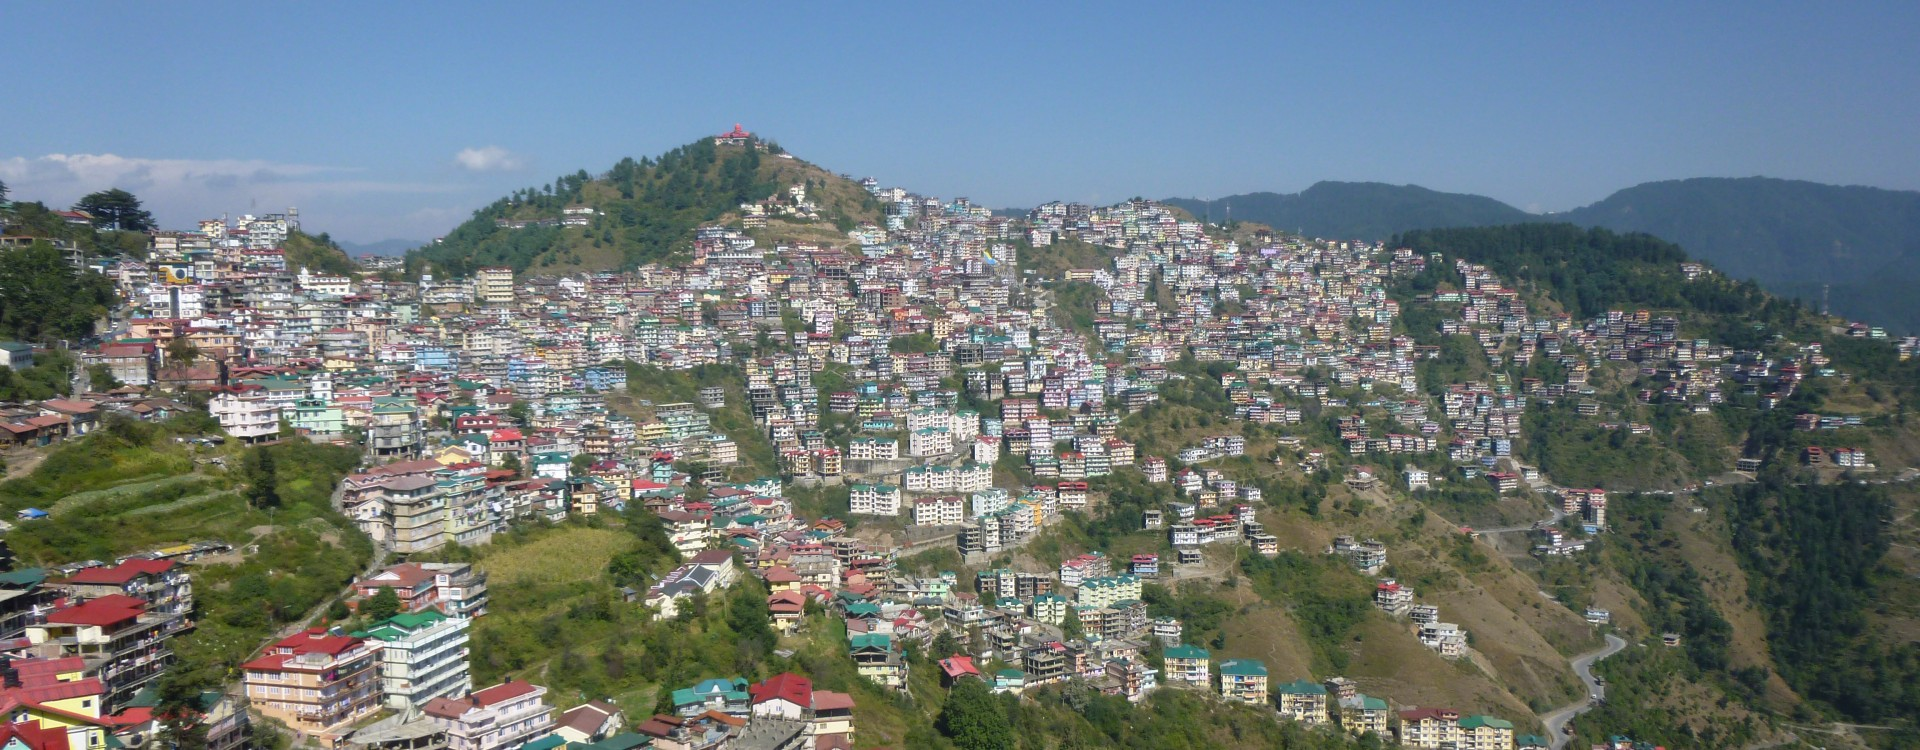 Shimla, summer home of the British Raj